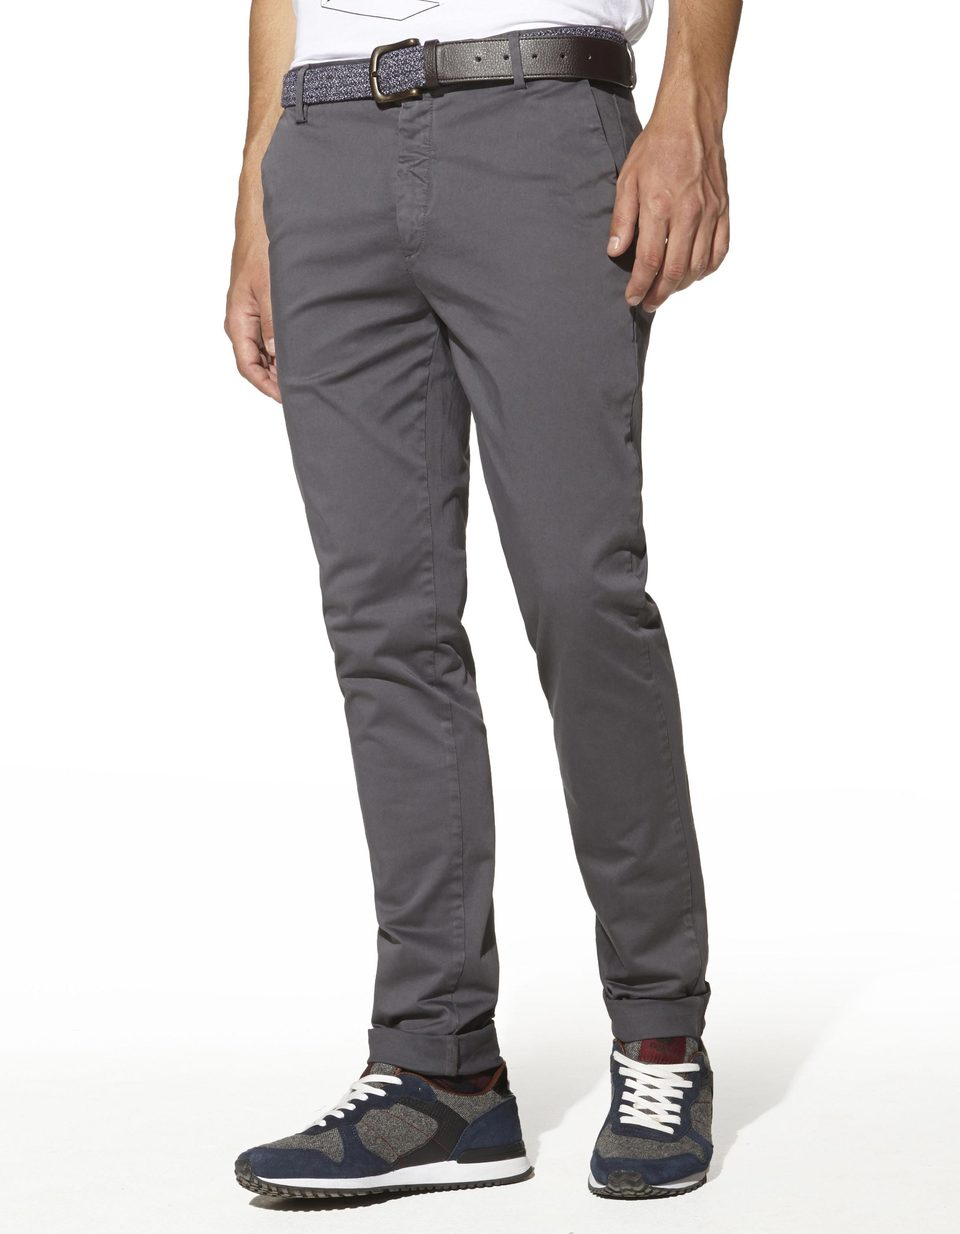 c9b34eade8e7d Pantalon chino coupe slim satin de coton stretch -  TLAKE ANTHRACITESTOCKHOLM - Vue de face - Celio ...